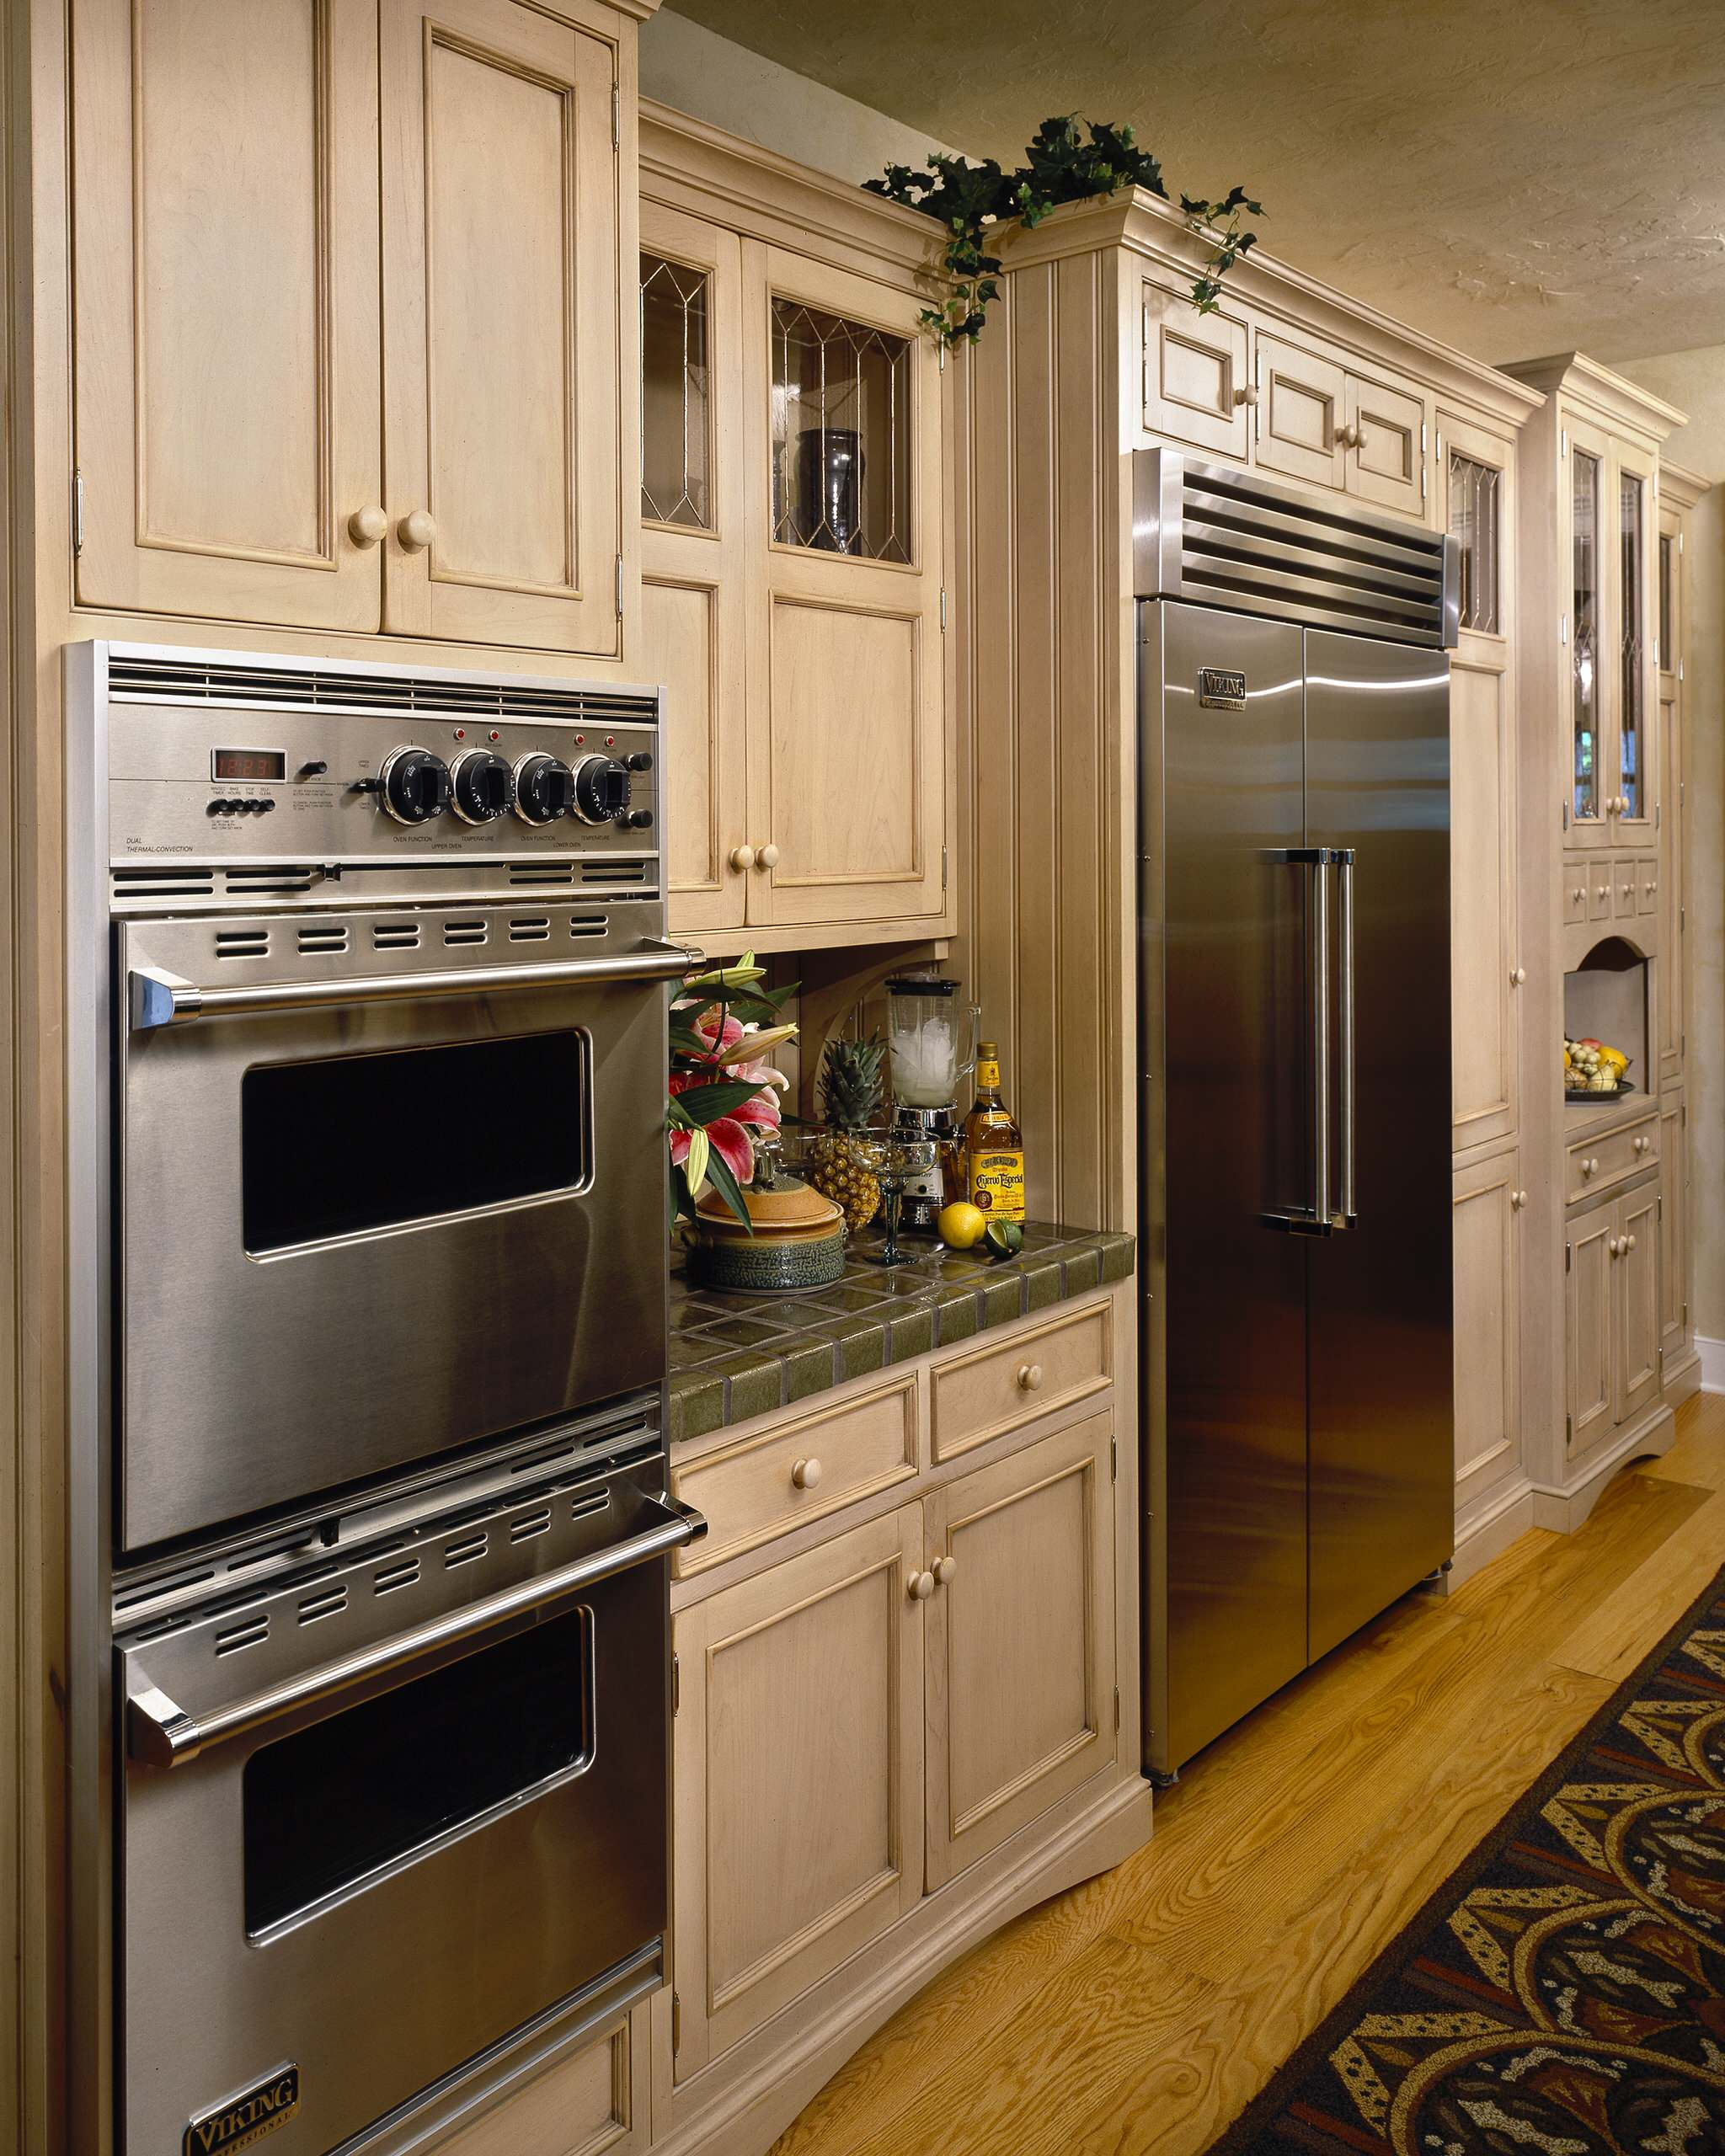 kitchen-appliances-solid-wood-cabiinets